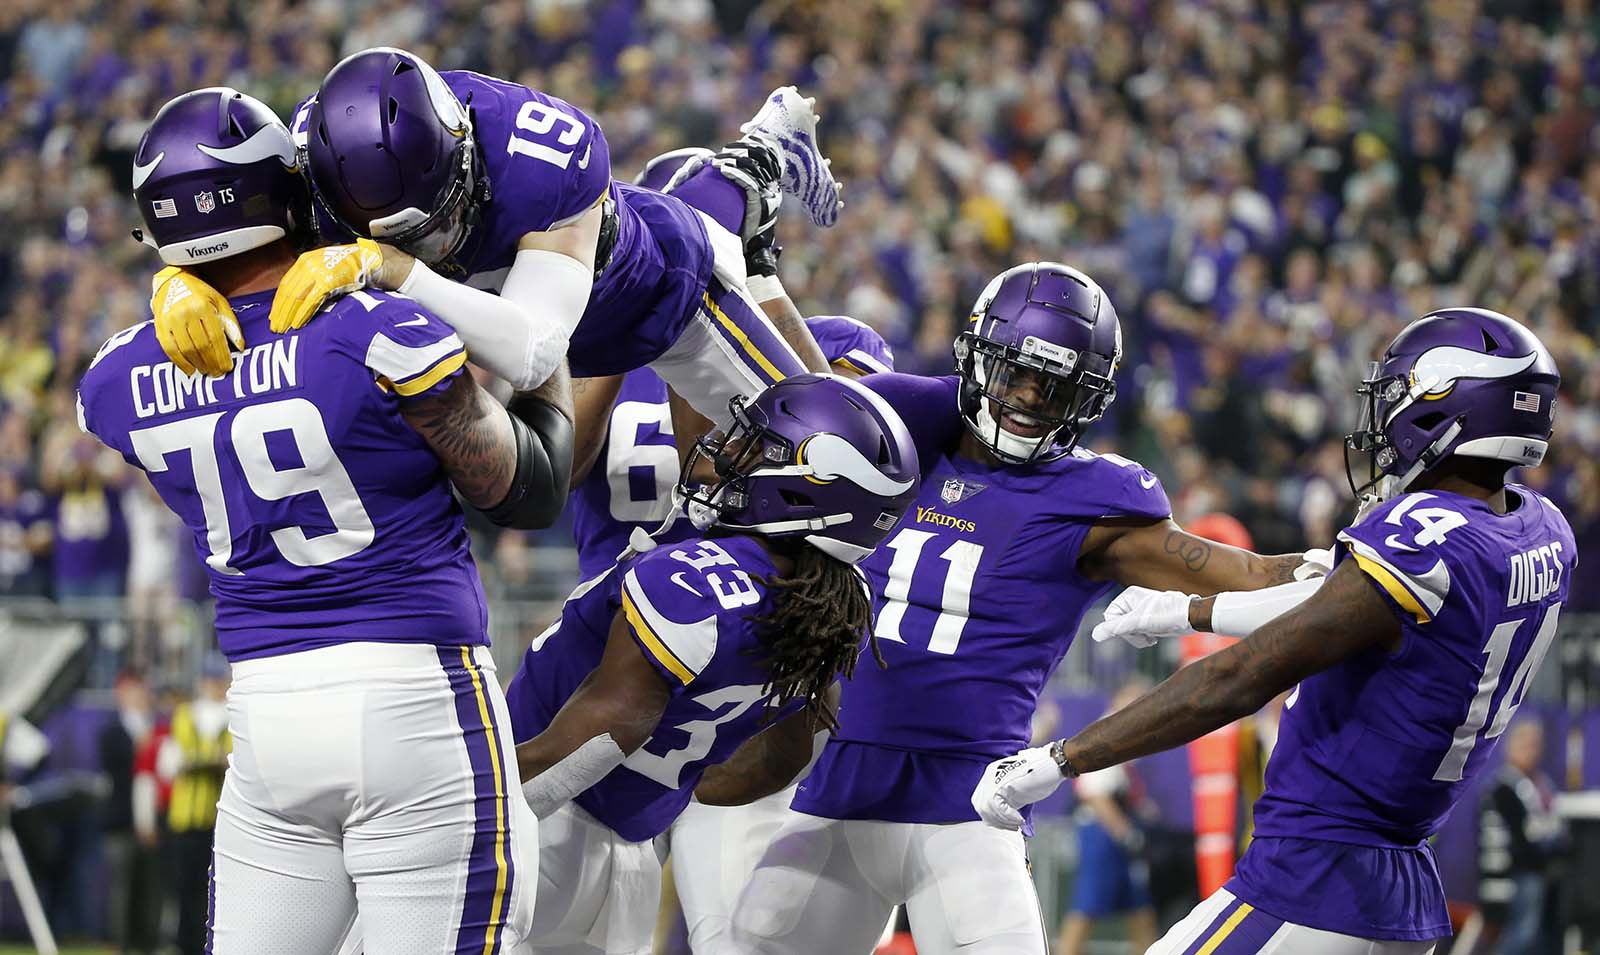 Minnesota Vikings running back Dalvin Cook (33) celebrates with teammates after catching a 26-yard touchdown pass during the first half of an NFL football game against the Green Bay Packers, Sunday, Nov. 25, 2018, in Minneapolis. (AP Photo/Bruce Kluckhohn)